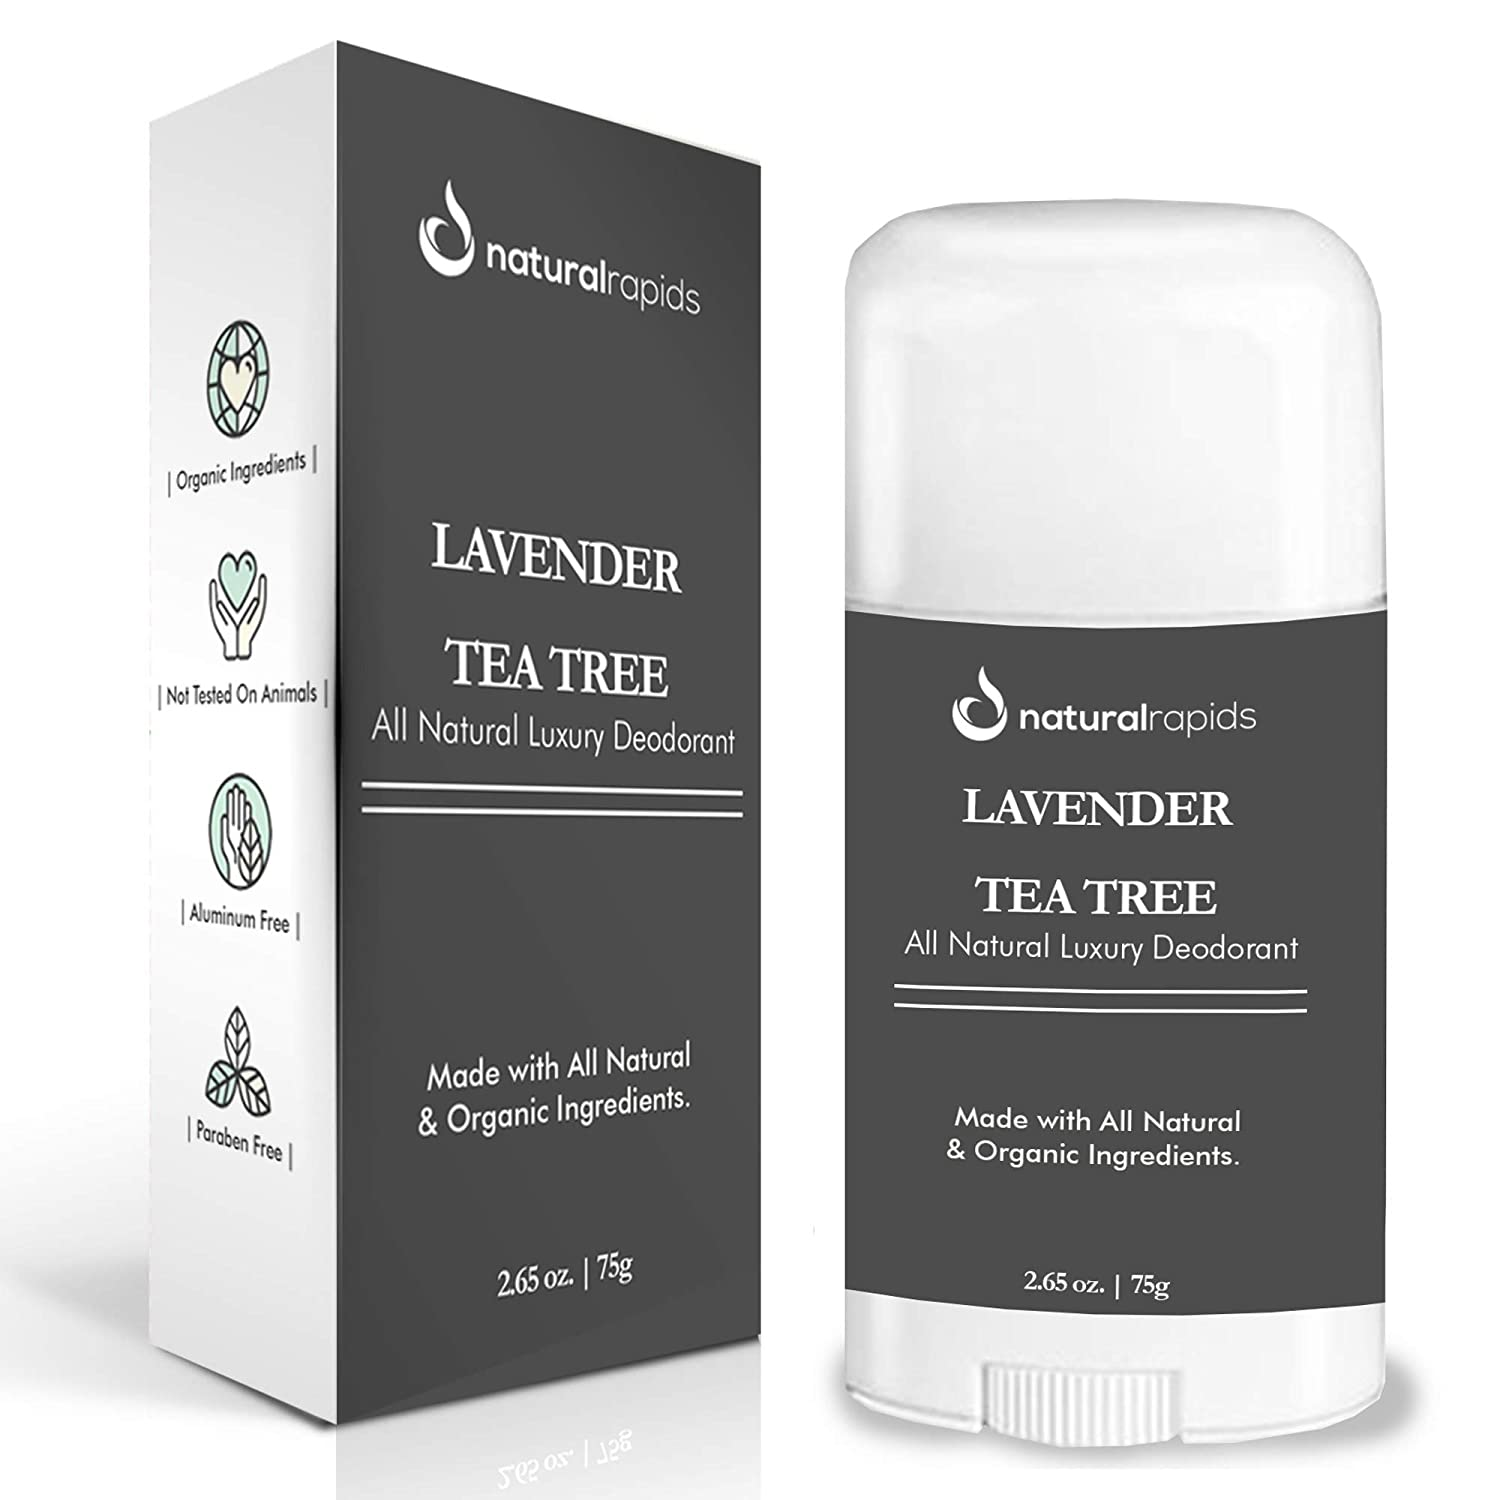 Aluminum-Free Natural Deodorant With Magnesium - Organic, Baking Soda Free, Healthy, and Safe Deodorant Stick (That Finally Works!) - For Women & Men